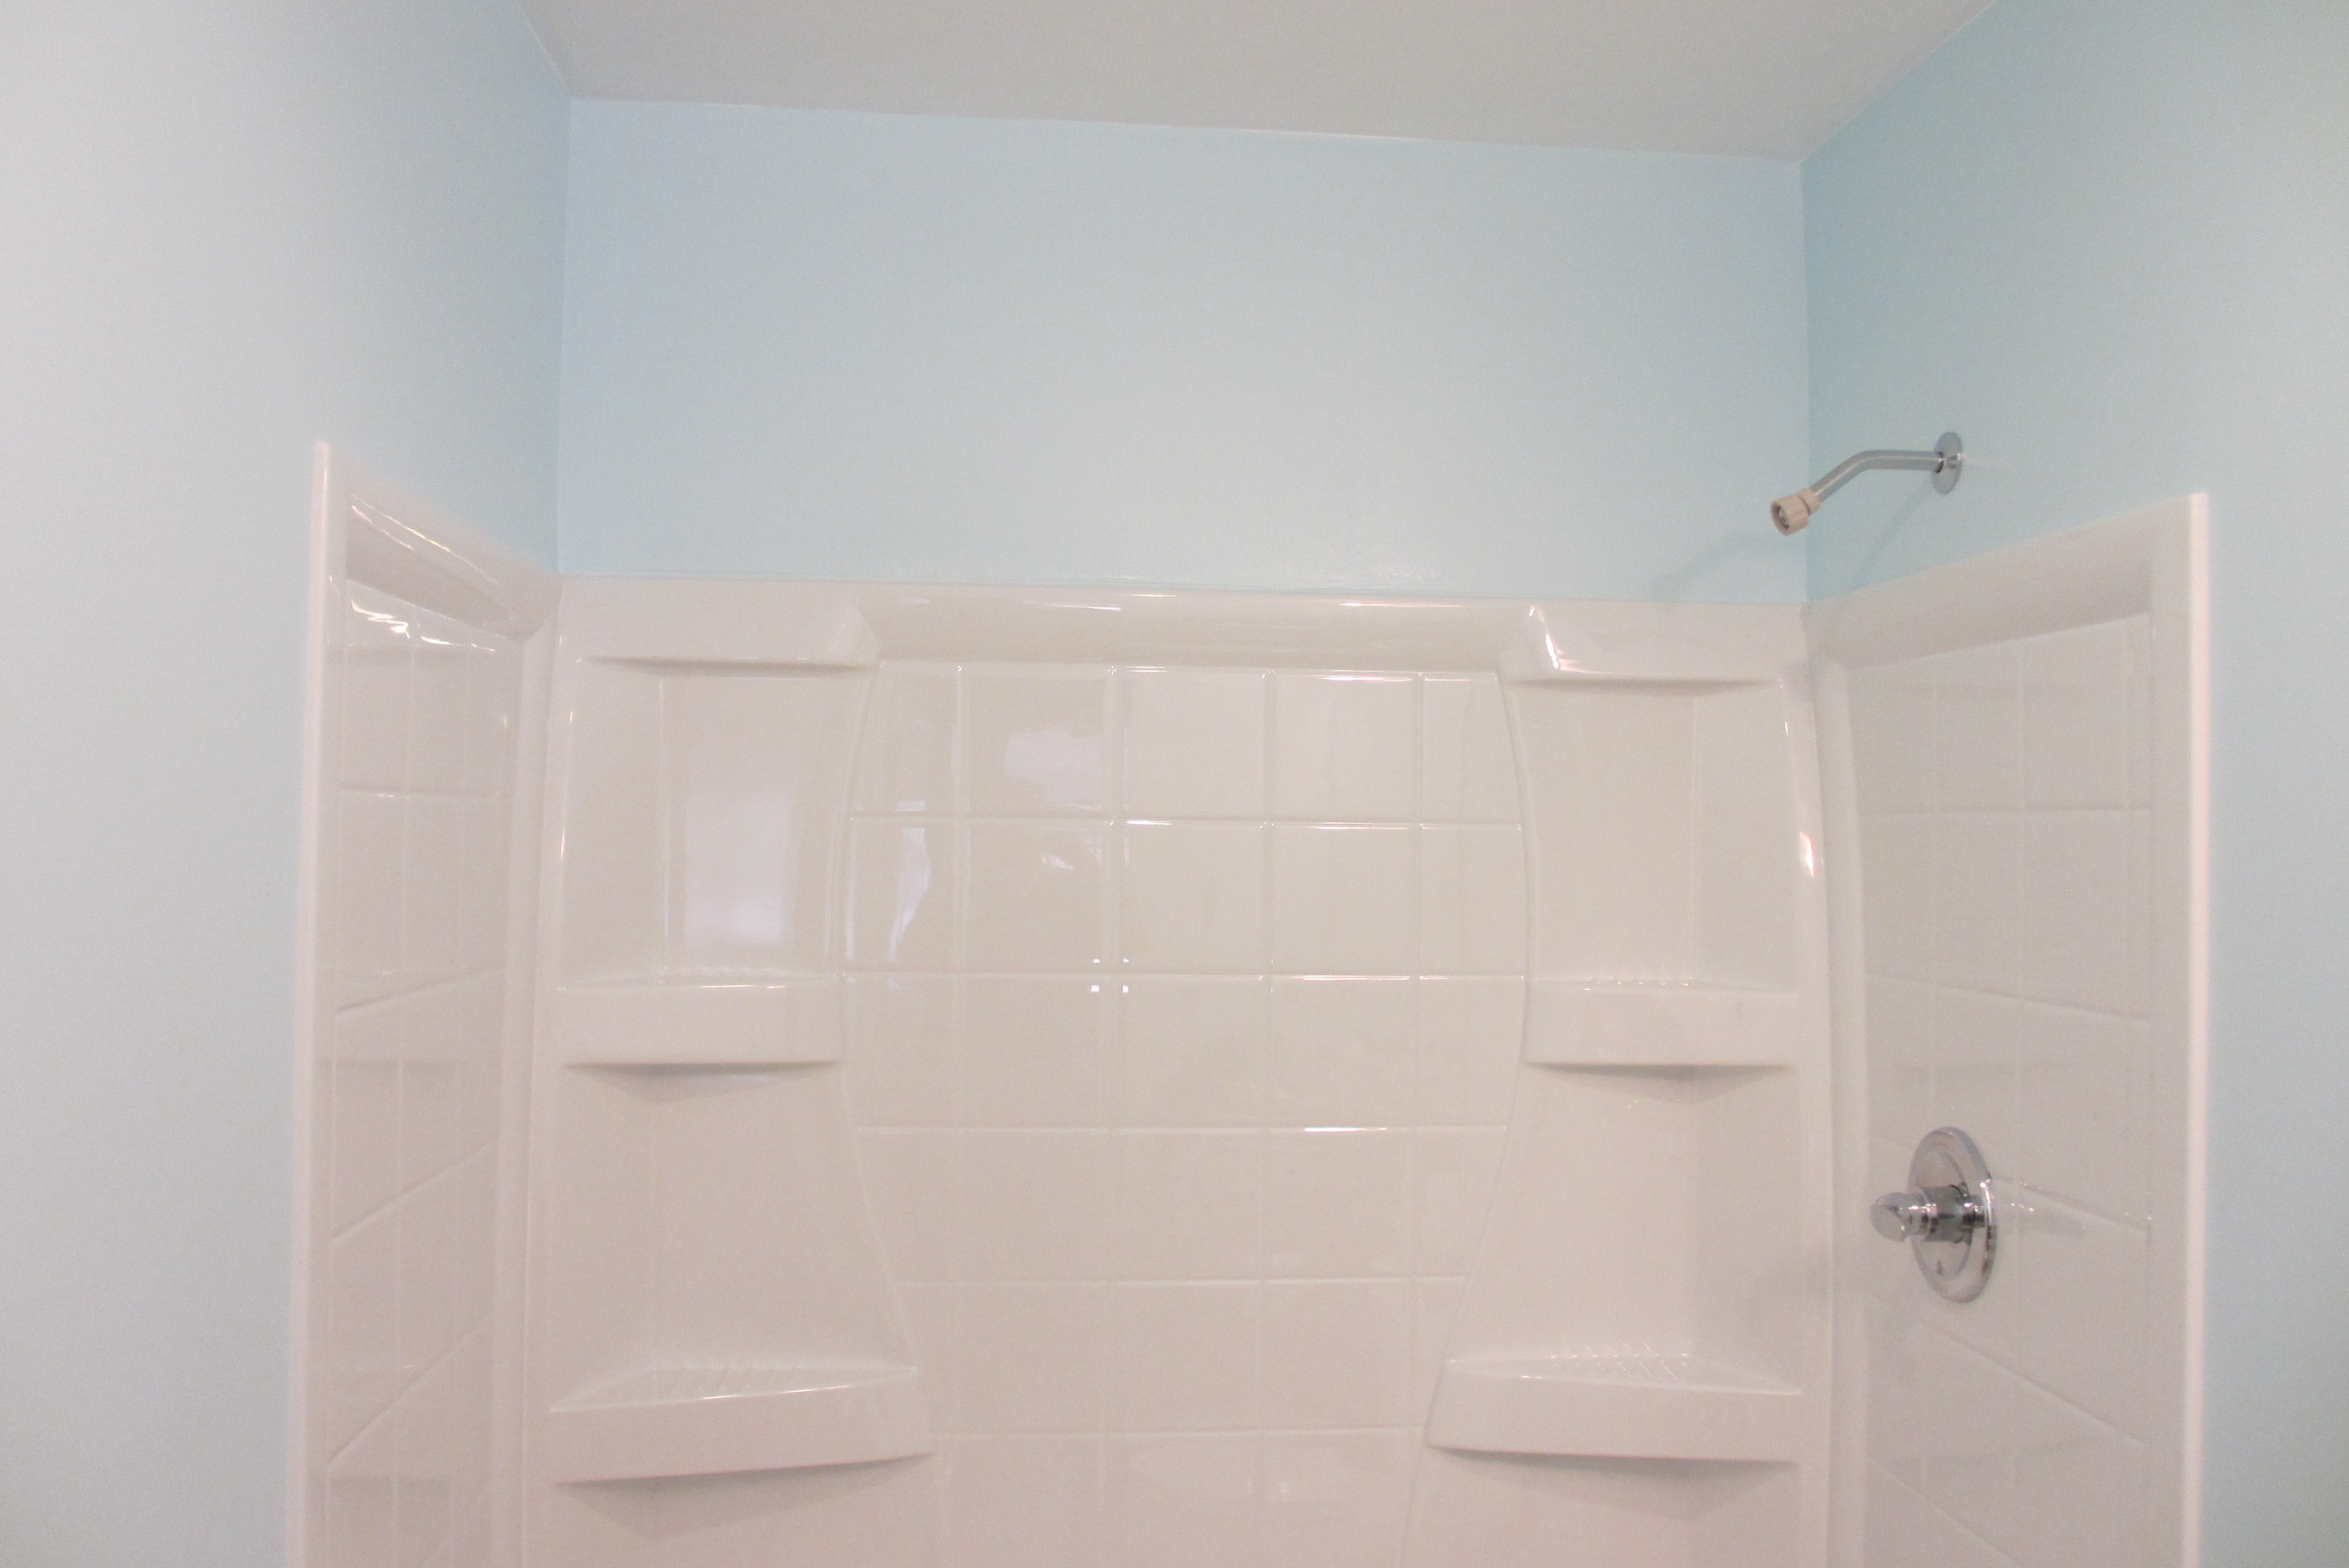 the whole bathroom got a coat of primer walls and ceiling the technique  used to install the primer is just as important as the technique used on  the top. Bathroom Ceiling Paint Primer  Bathroom Painting Tips And Ideas